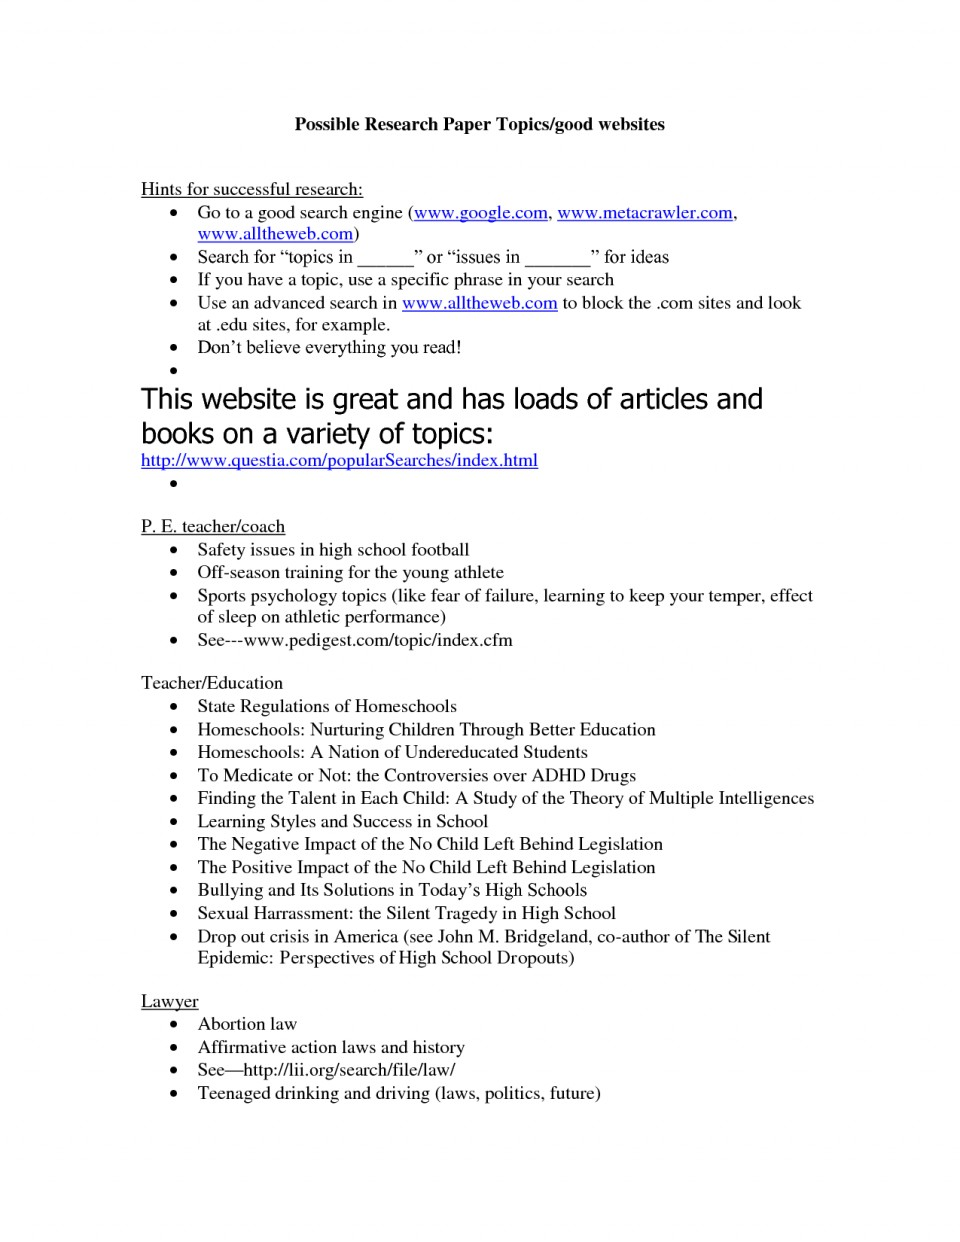 004 Research Paper Topics Awful For Interesting Papers High School In Physical Education College 960